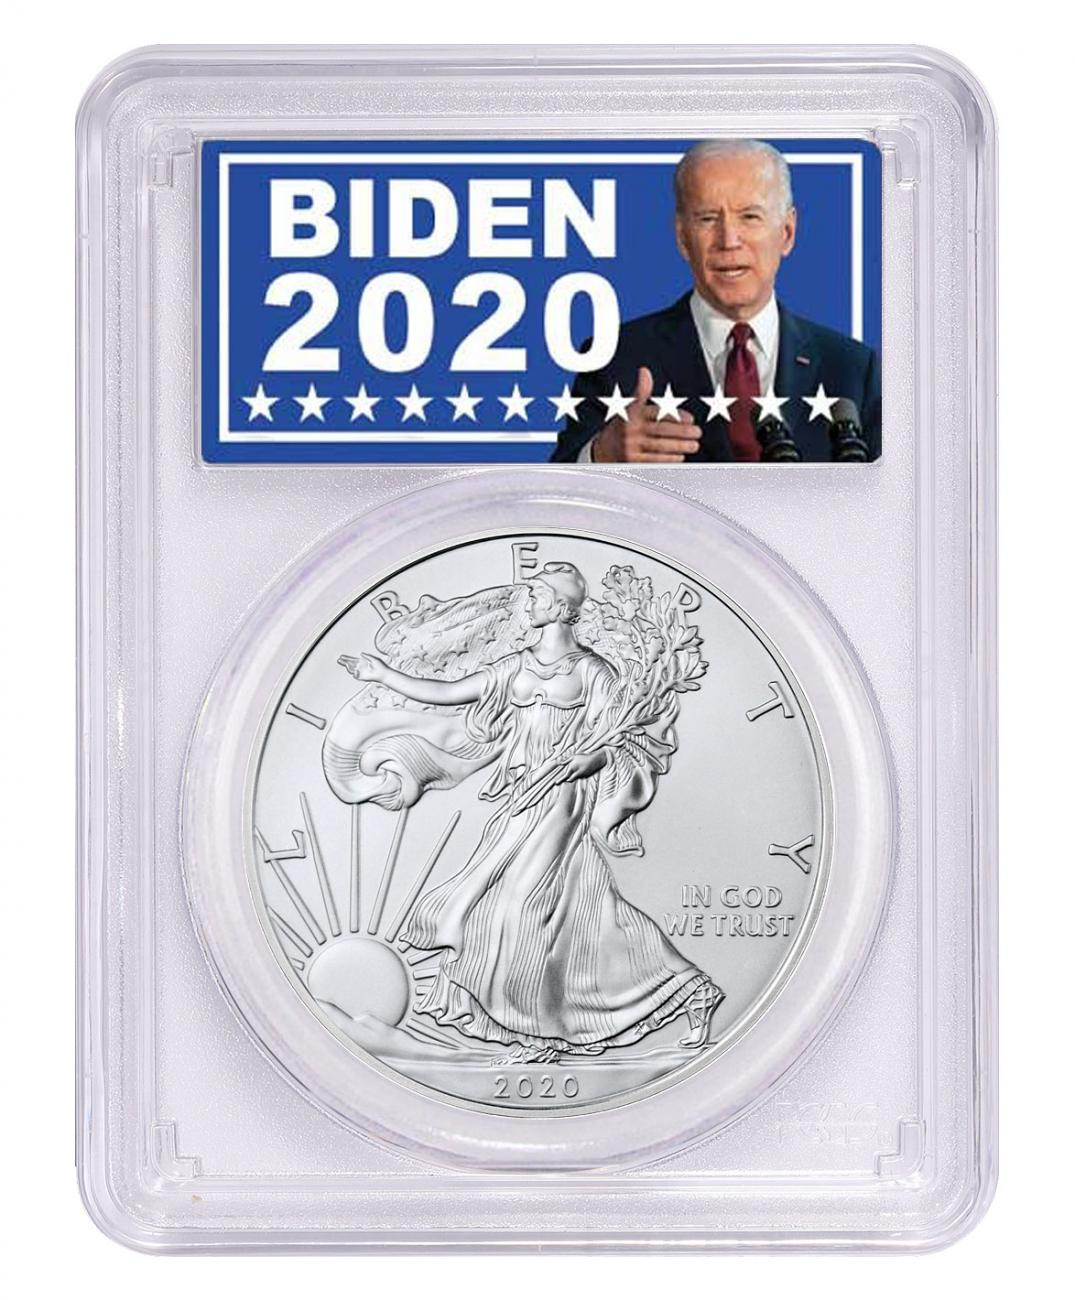 2020 1 oz American Silver Eagle $1 Coin PCGS MS70 Biden 2020 Label